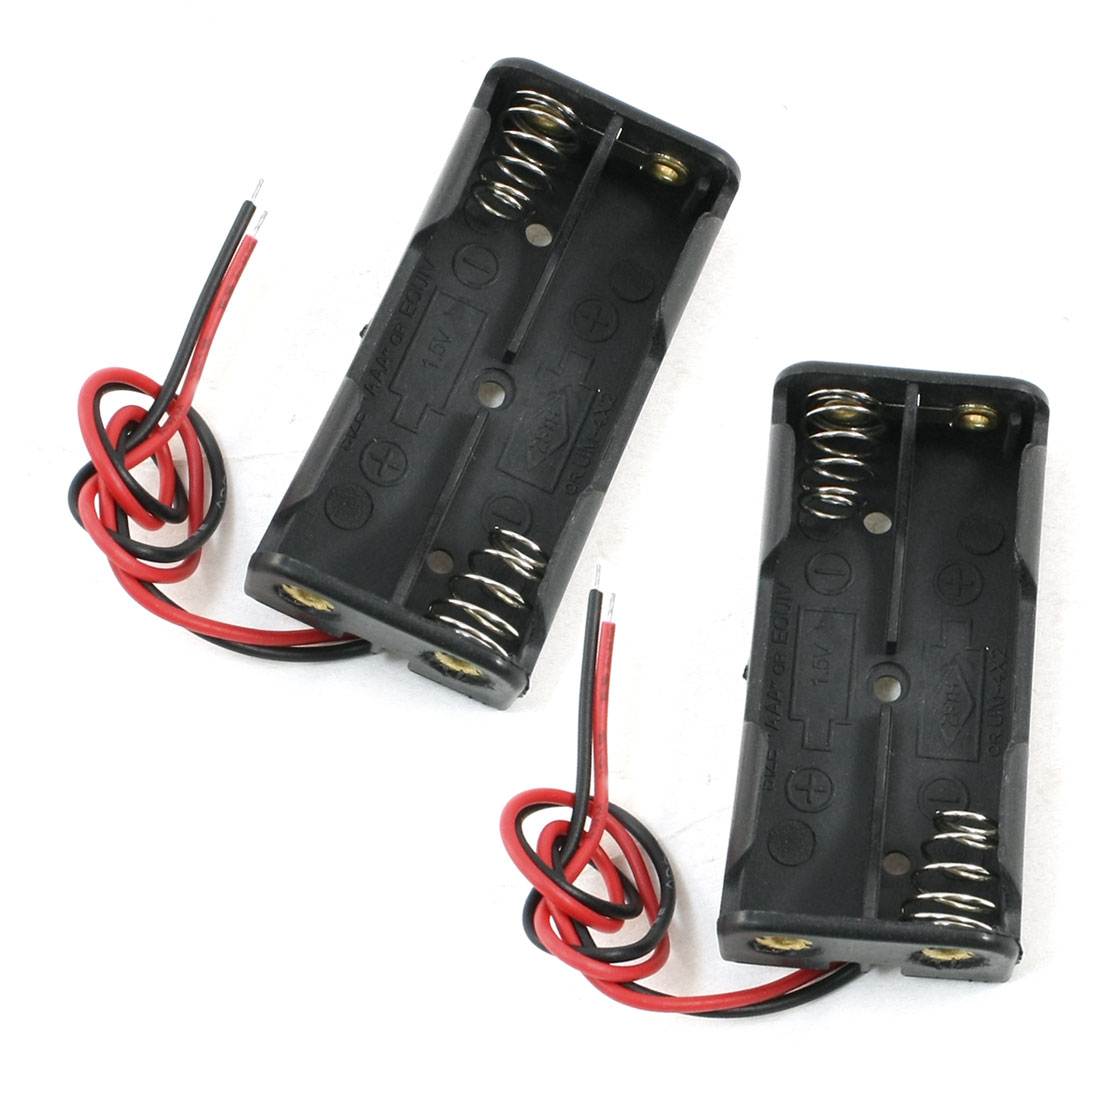 2PCS Black 2 x 1.5V AAA Battery Batteries Holder Case w Wire Leads